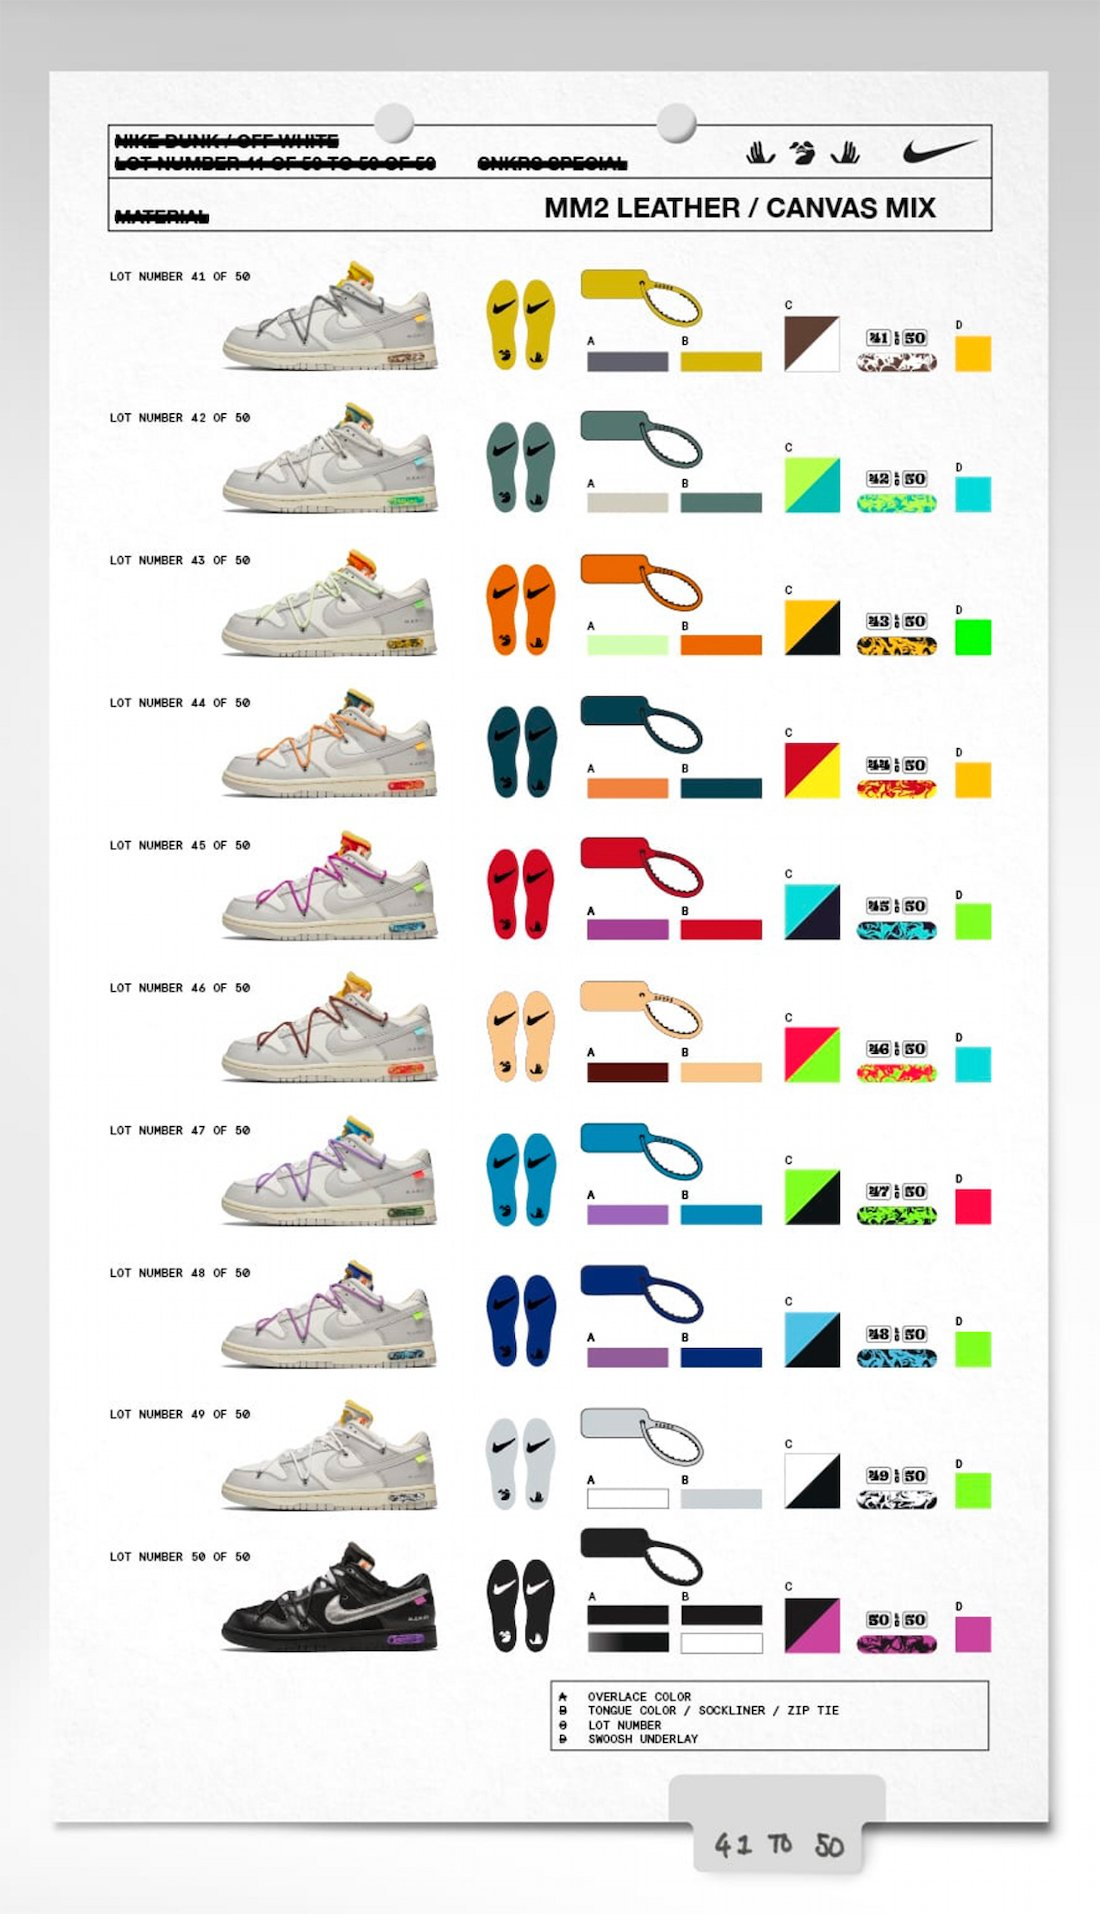 Off-White x Nike Dunk Low 41-50 Collection